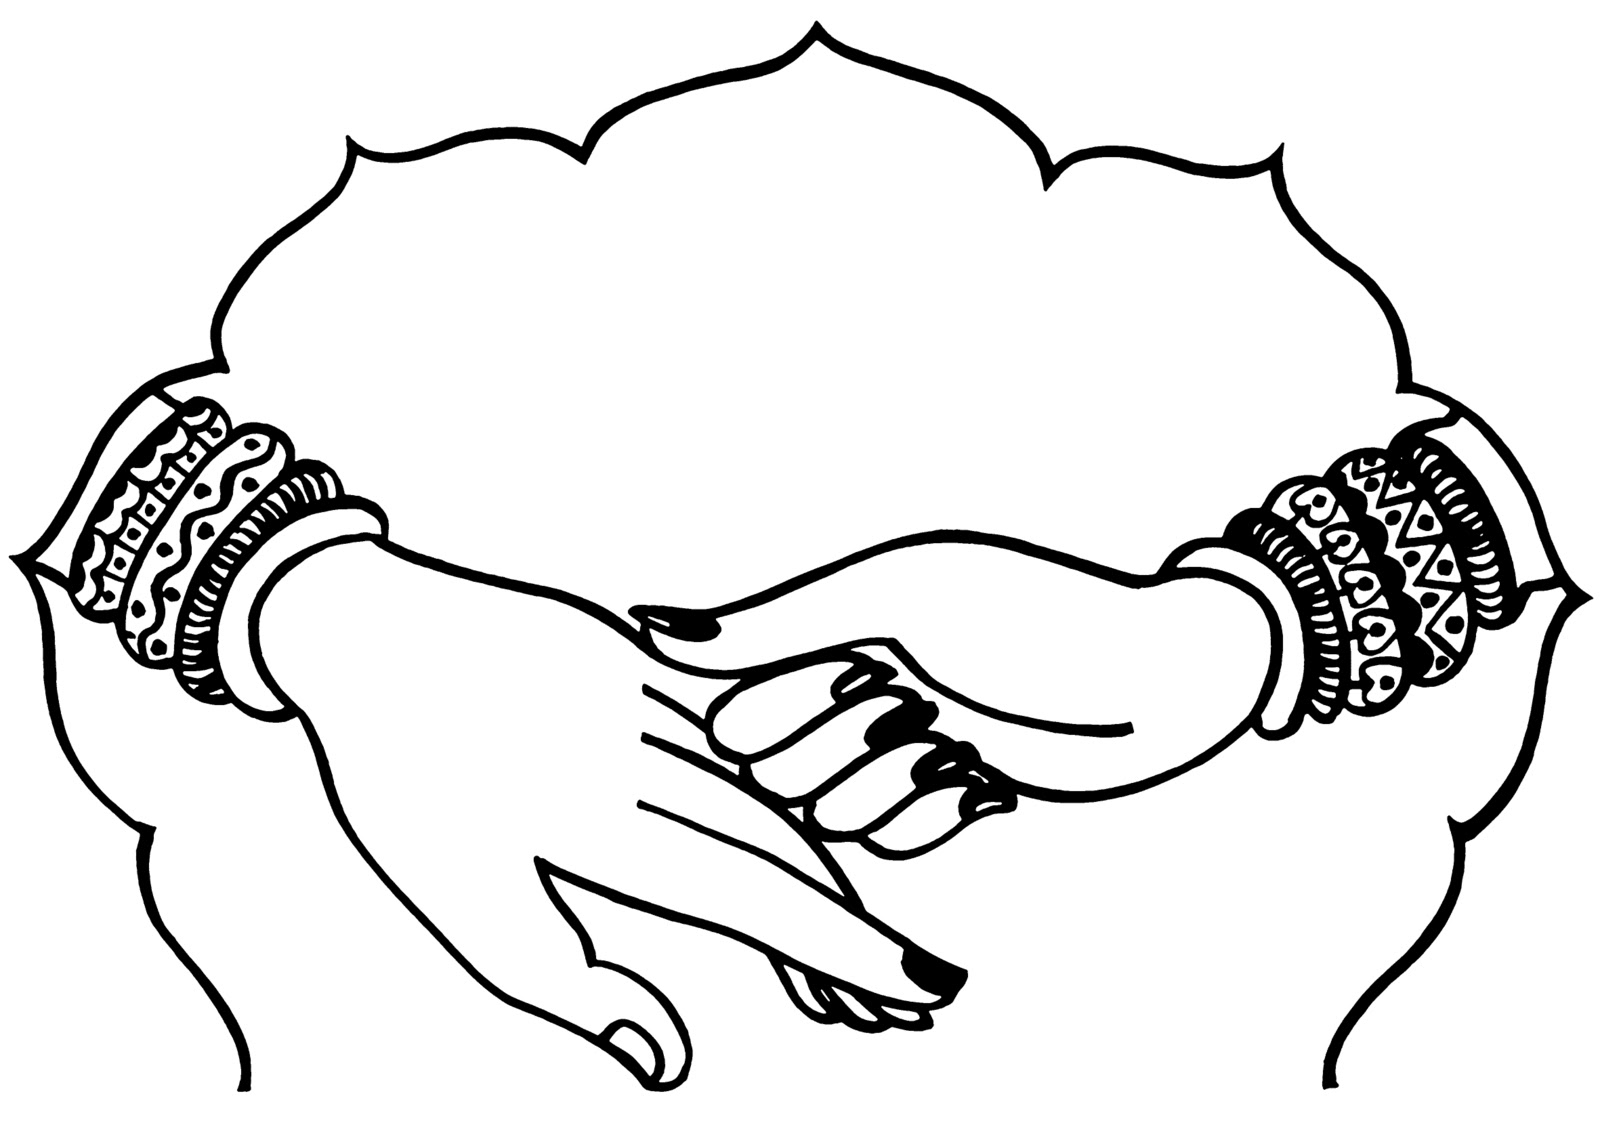 Praying Hands Clipart Black And White